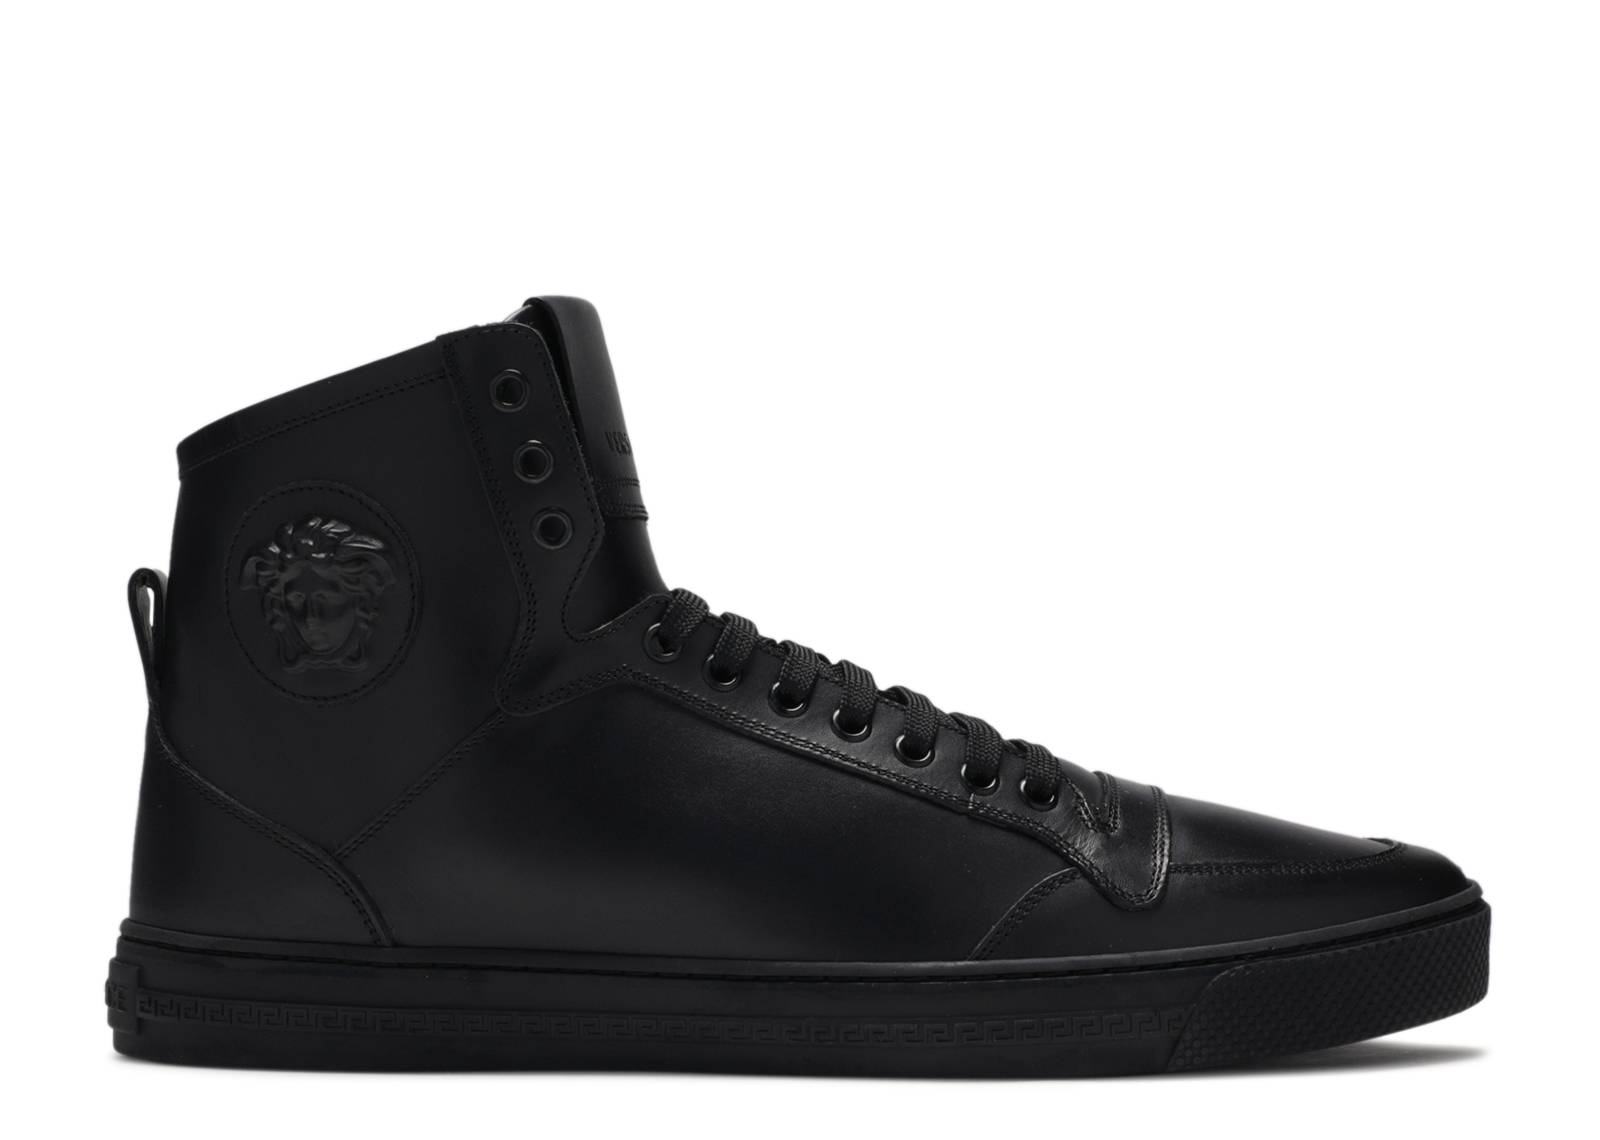 VERSACE SPORTS SHOES